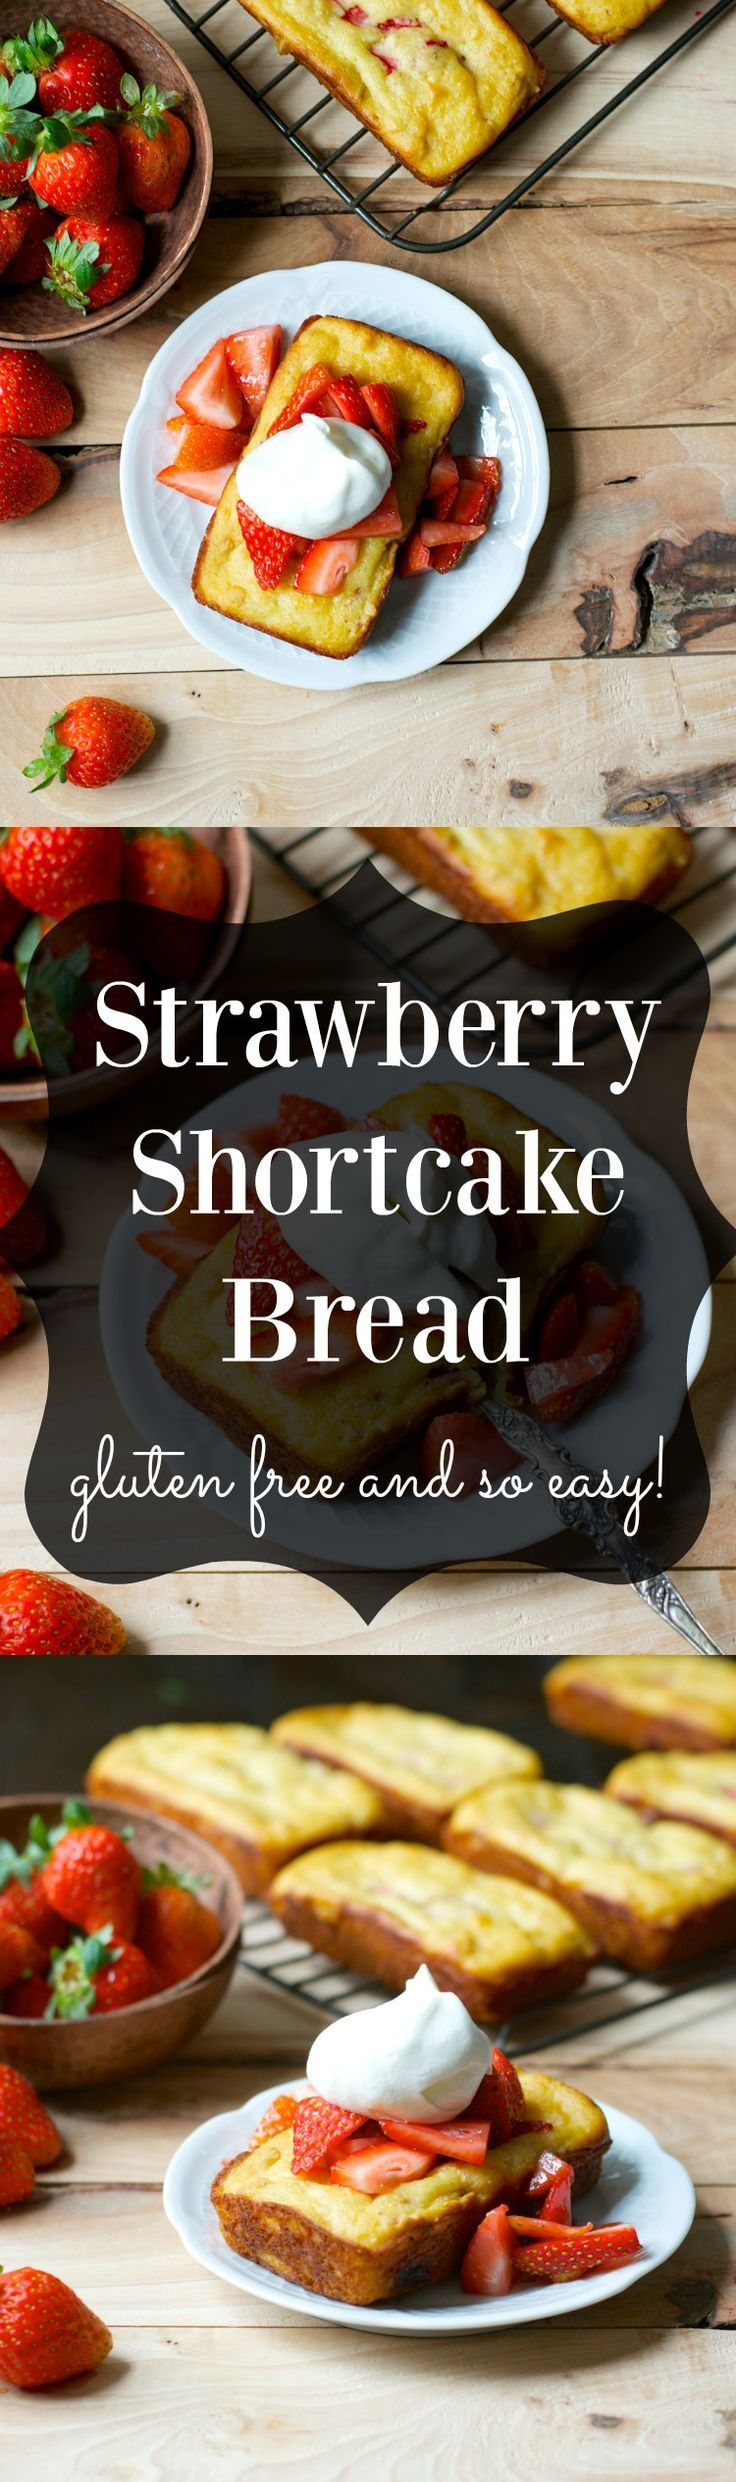 gluten free recipes strawberry recipes strawberry shortcake strawberry ...